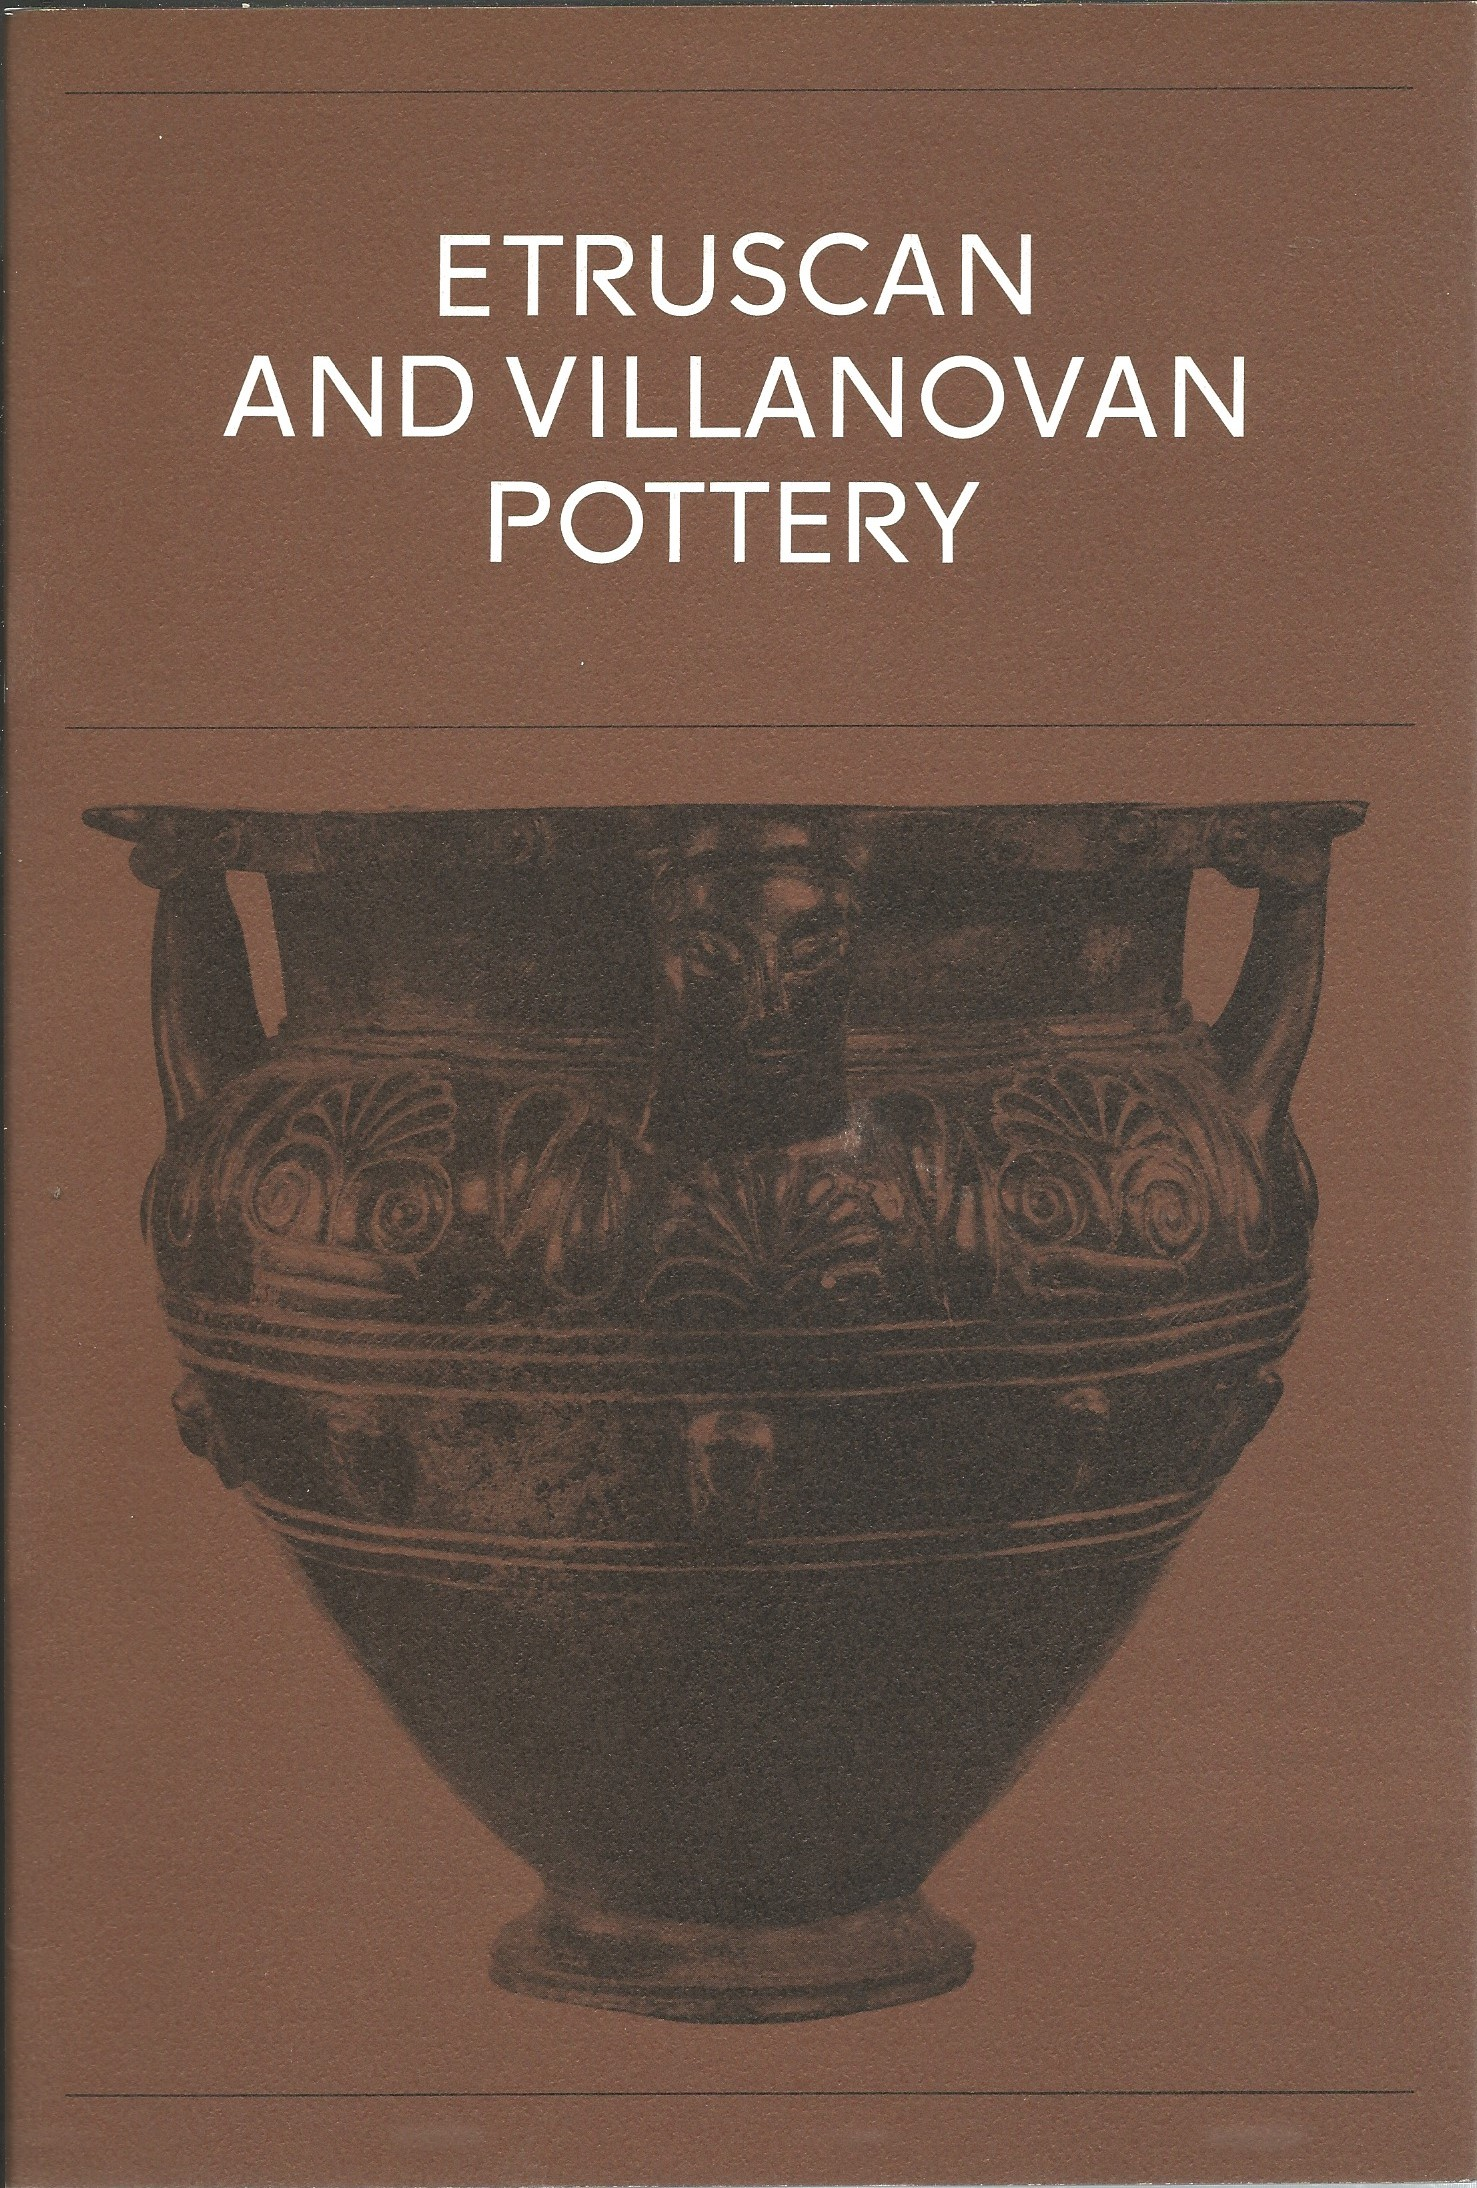 Image for ETRUSCAN AND VILLANOVAN POTTERY